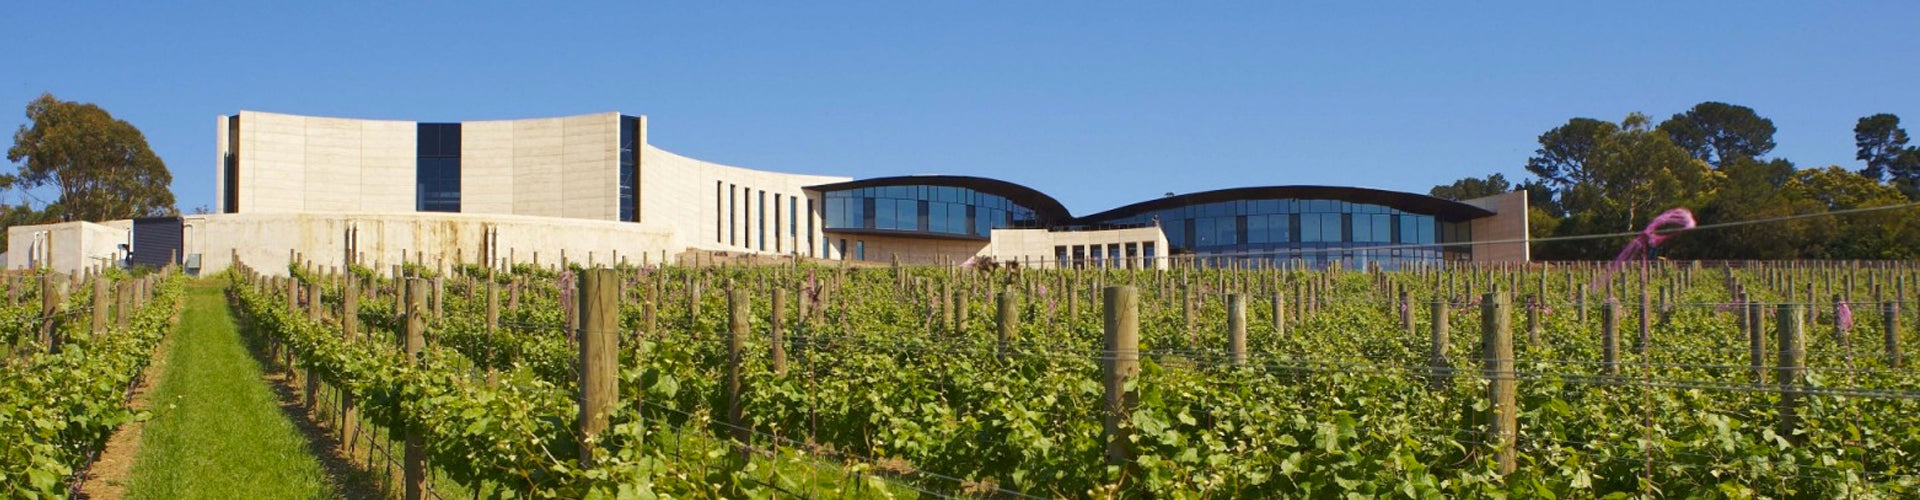 Port Phillip Wine Estate Winery in Mornington Peninsula